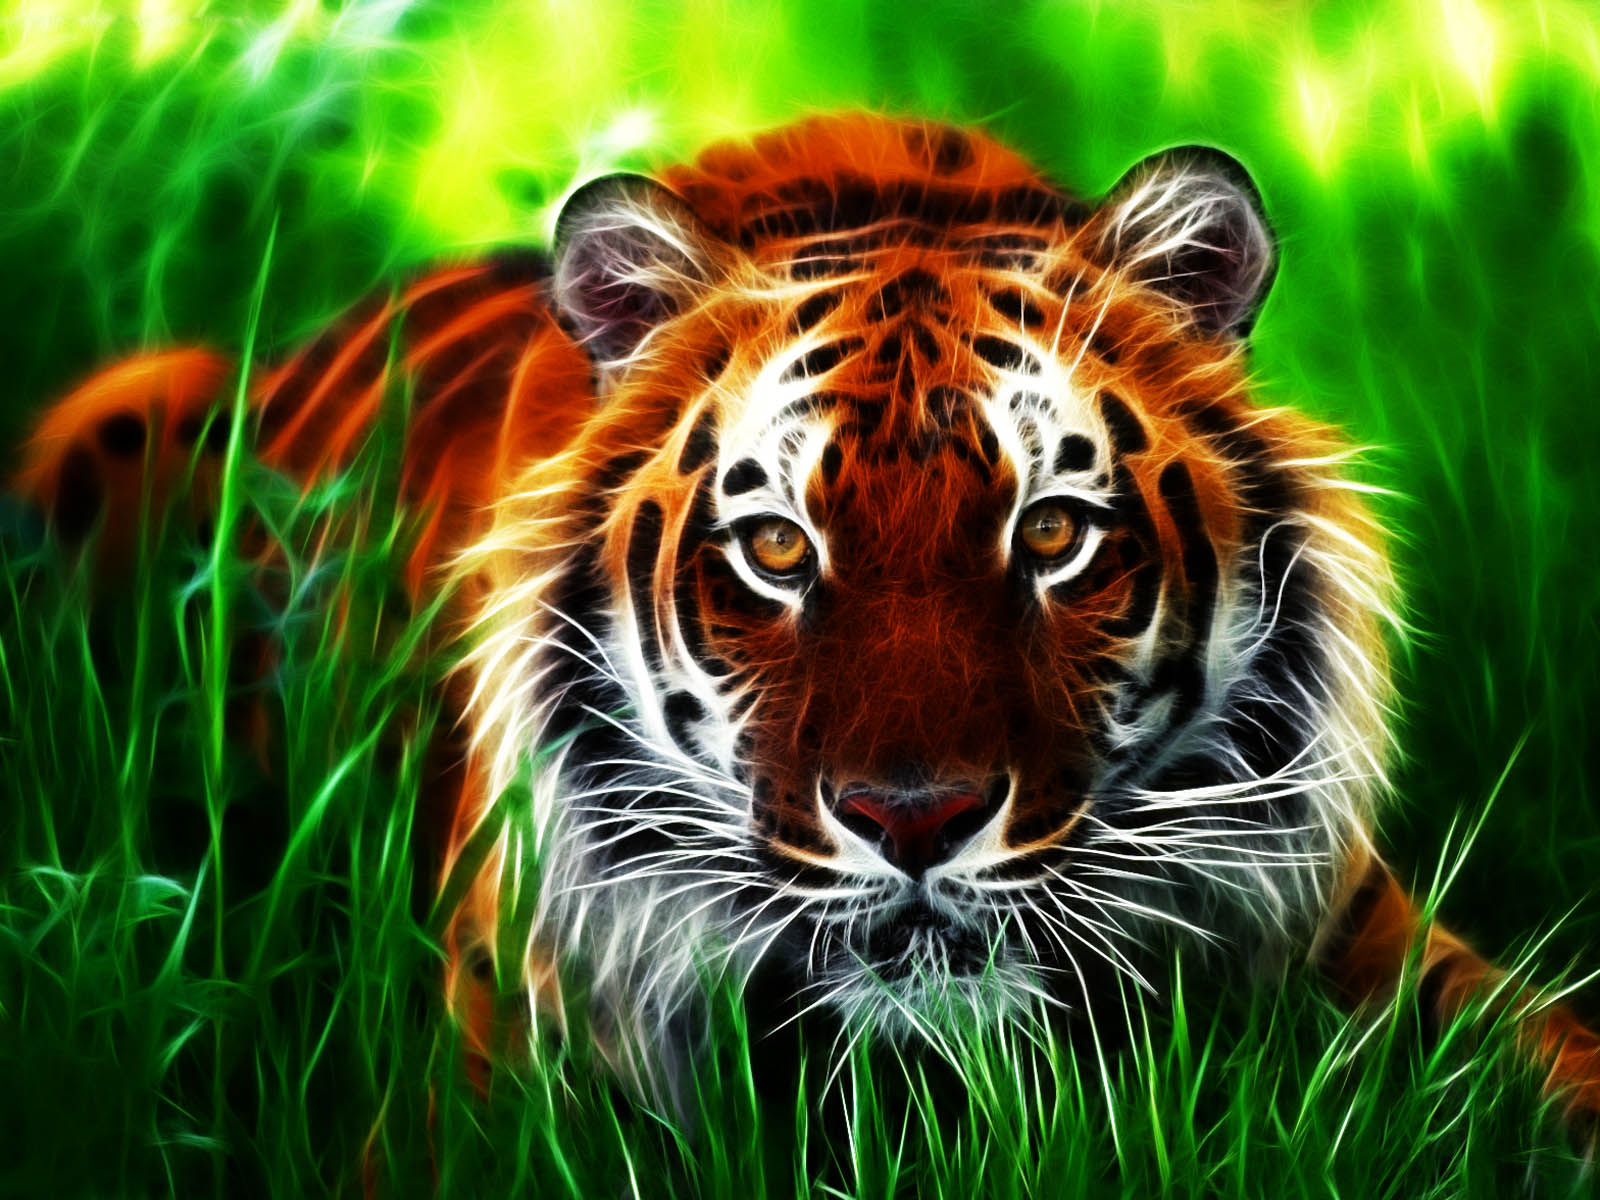 Tiger 3D Wallpapers Images Paos Pictures and Backgrounds for 1600x1200